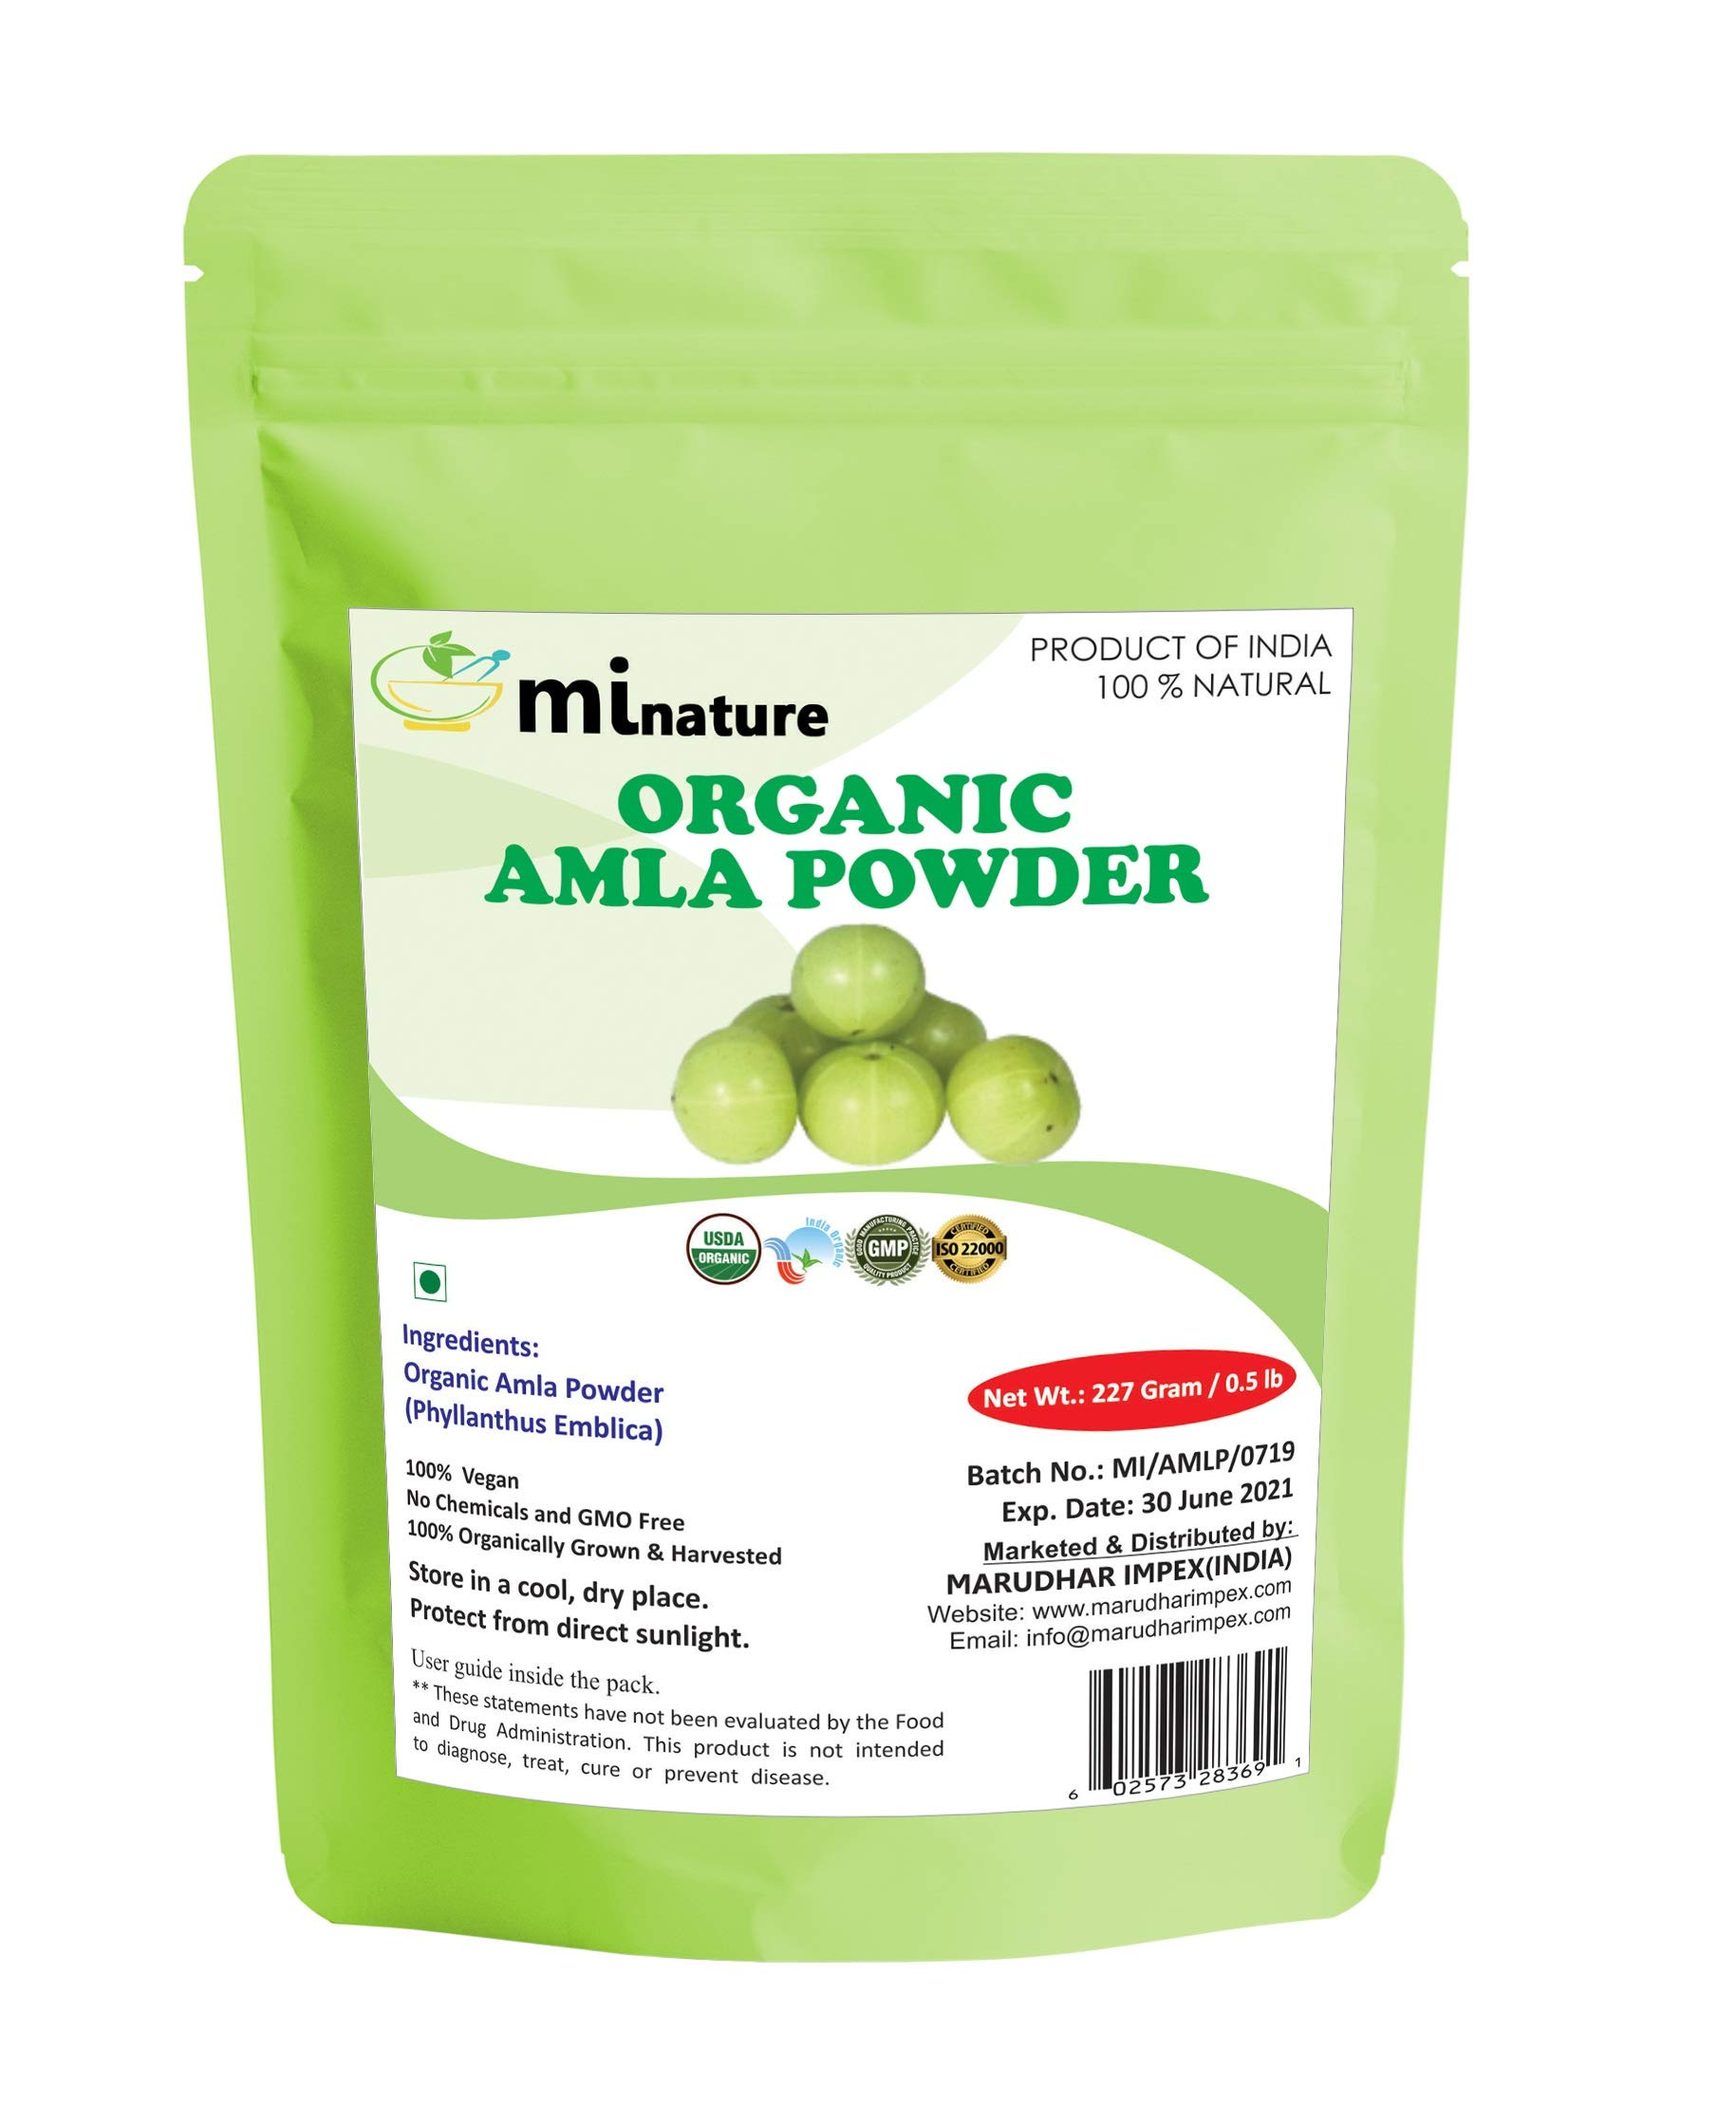 mi nature USDA Organic Amla Powder (Amalaki),227 gm / 0.5 lb, Powerful Immune System and Energy Booster, 100% Raw Superfoods From India, Non-Irradiated, Non-Contaminated, Non-GMO and Vegan Friendly by mi nature